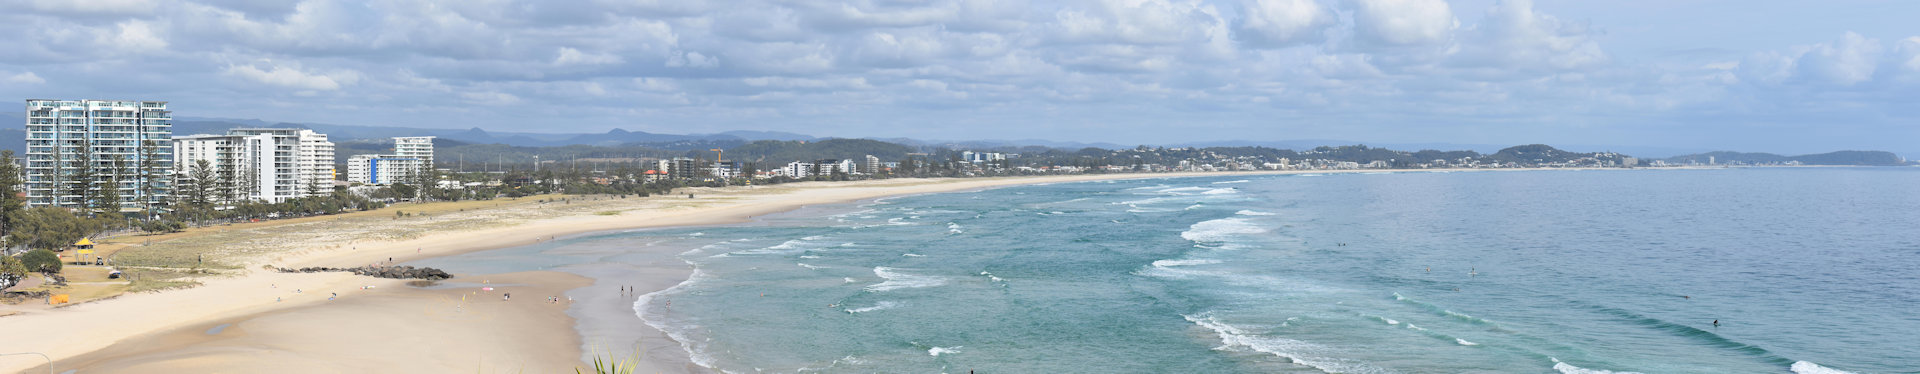 Panorama view from The Big Eagle at Kirra Point over Kirra Beach and the Gold Coast towards Paradise Point